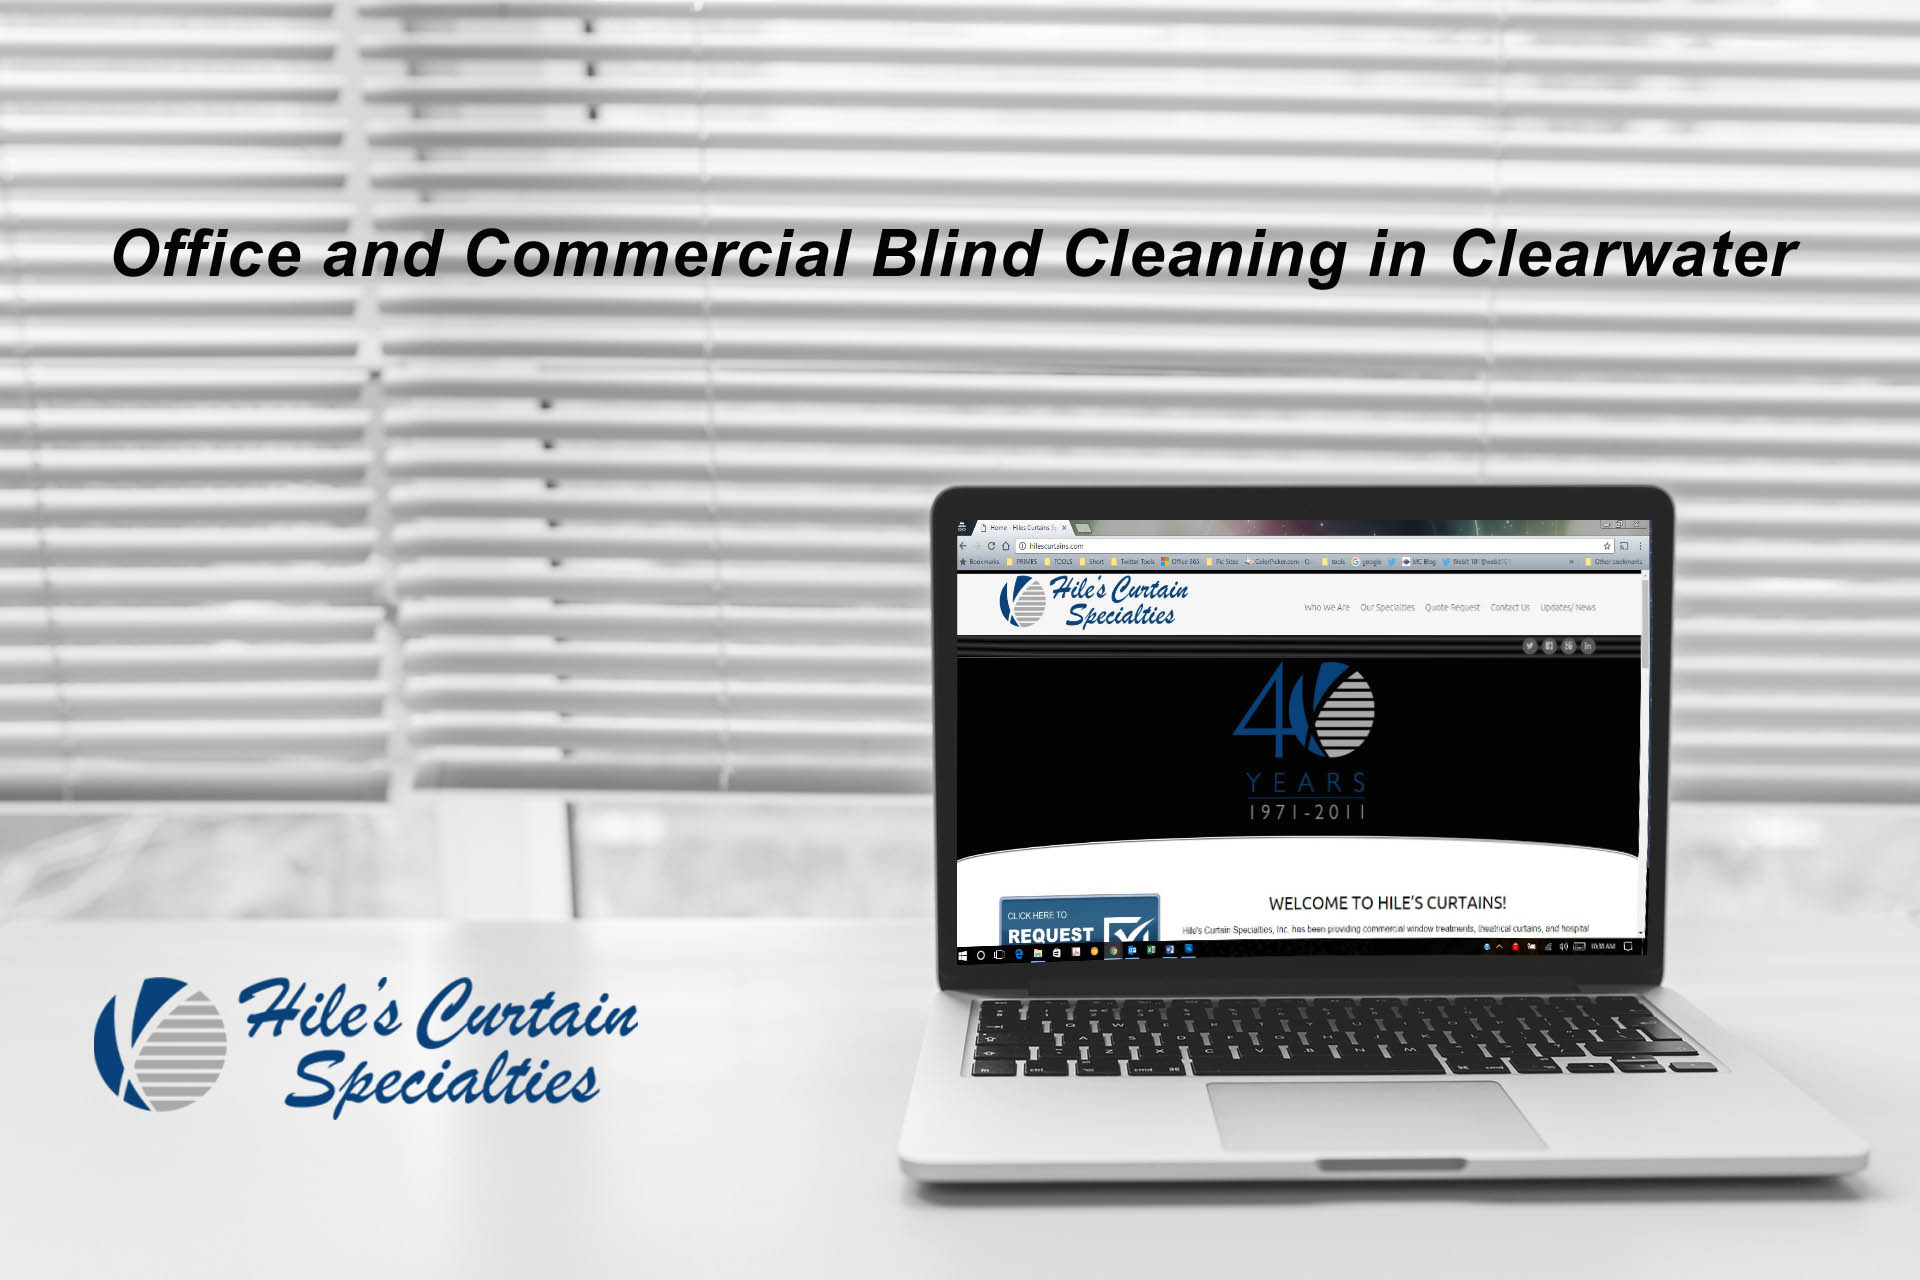 Office and Commercial Blind Cleaning in Clearwater